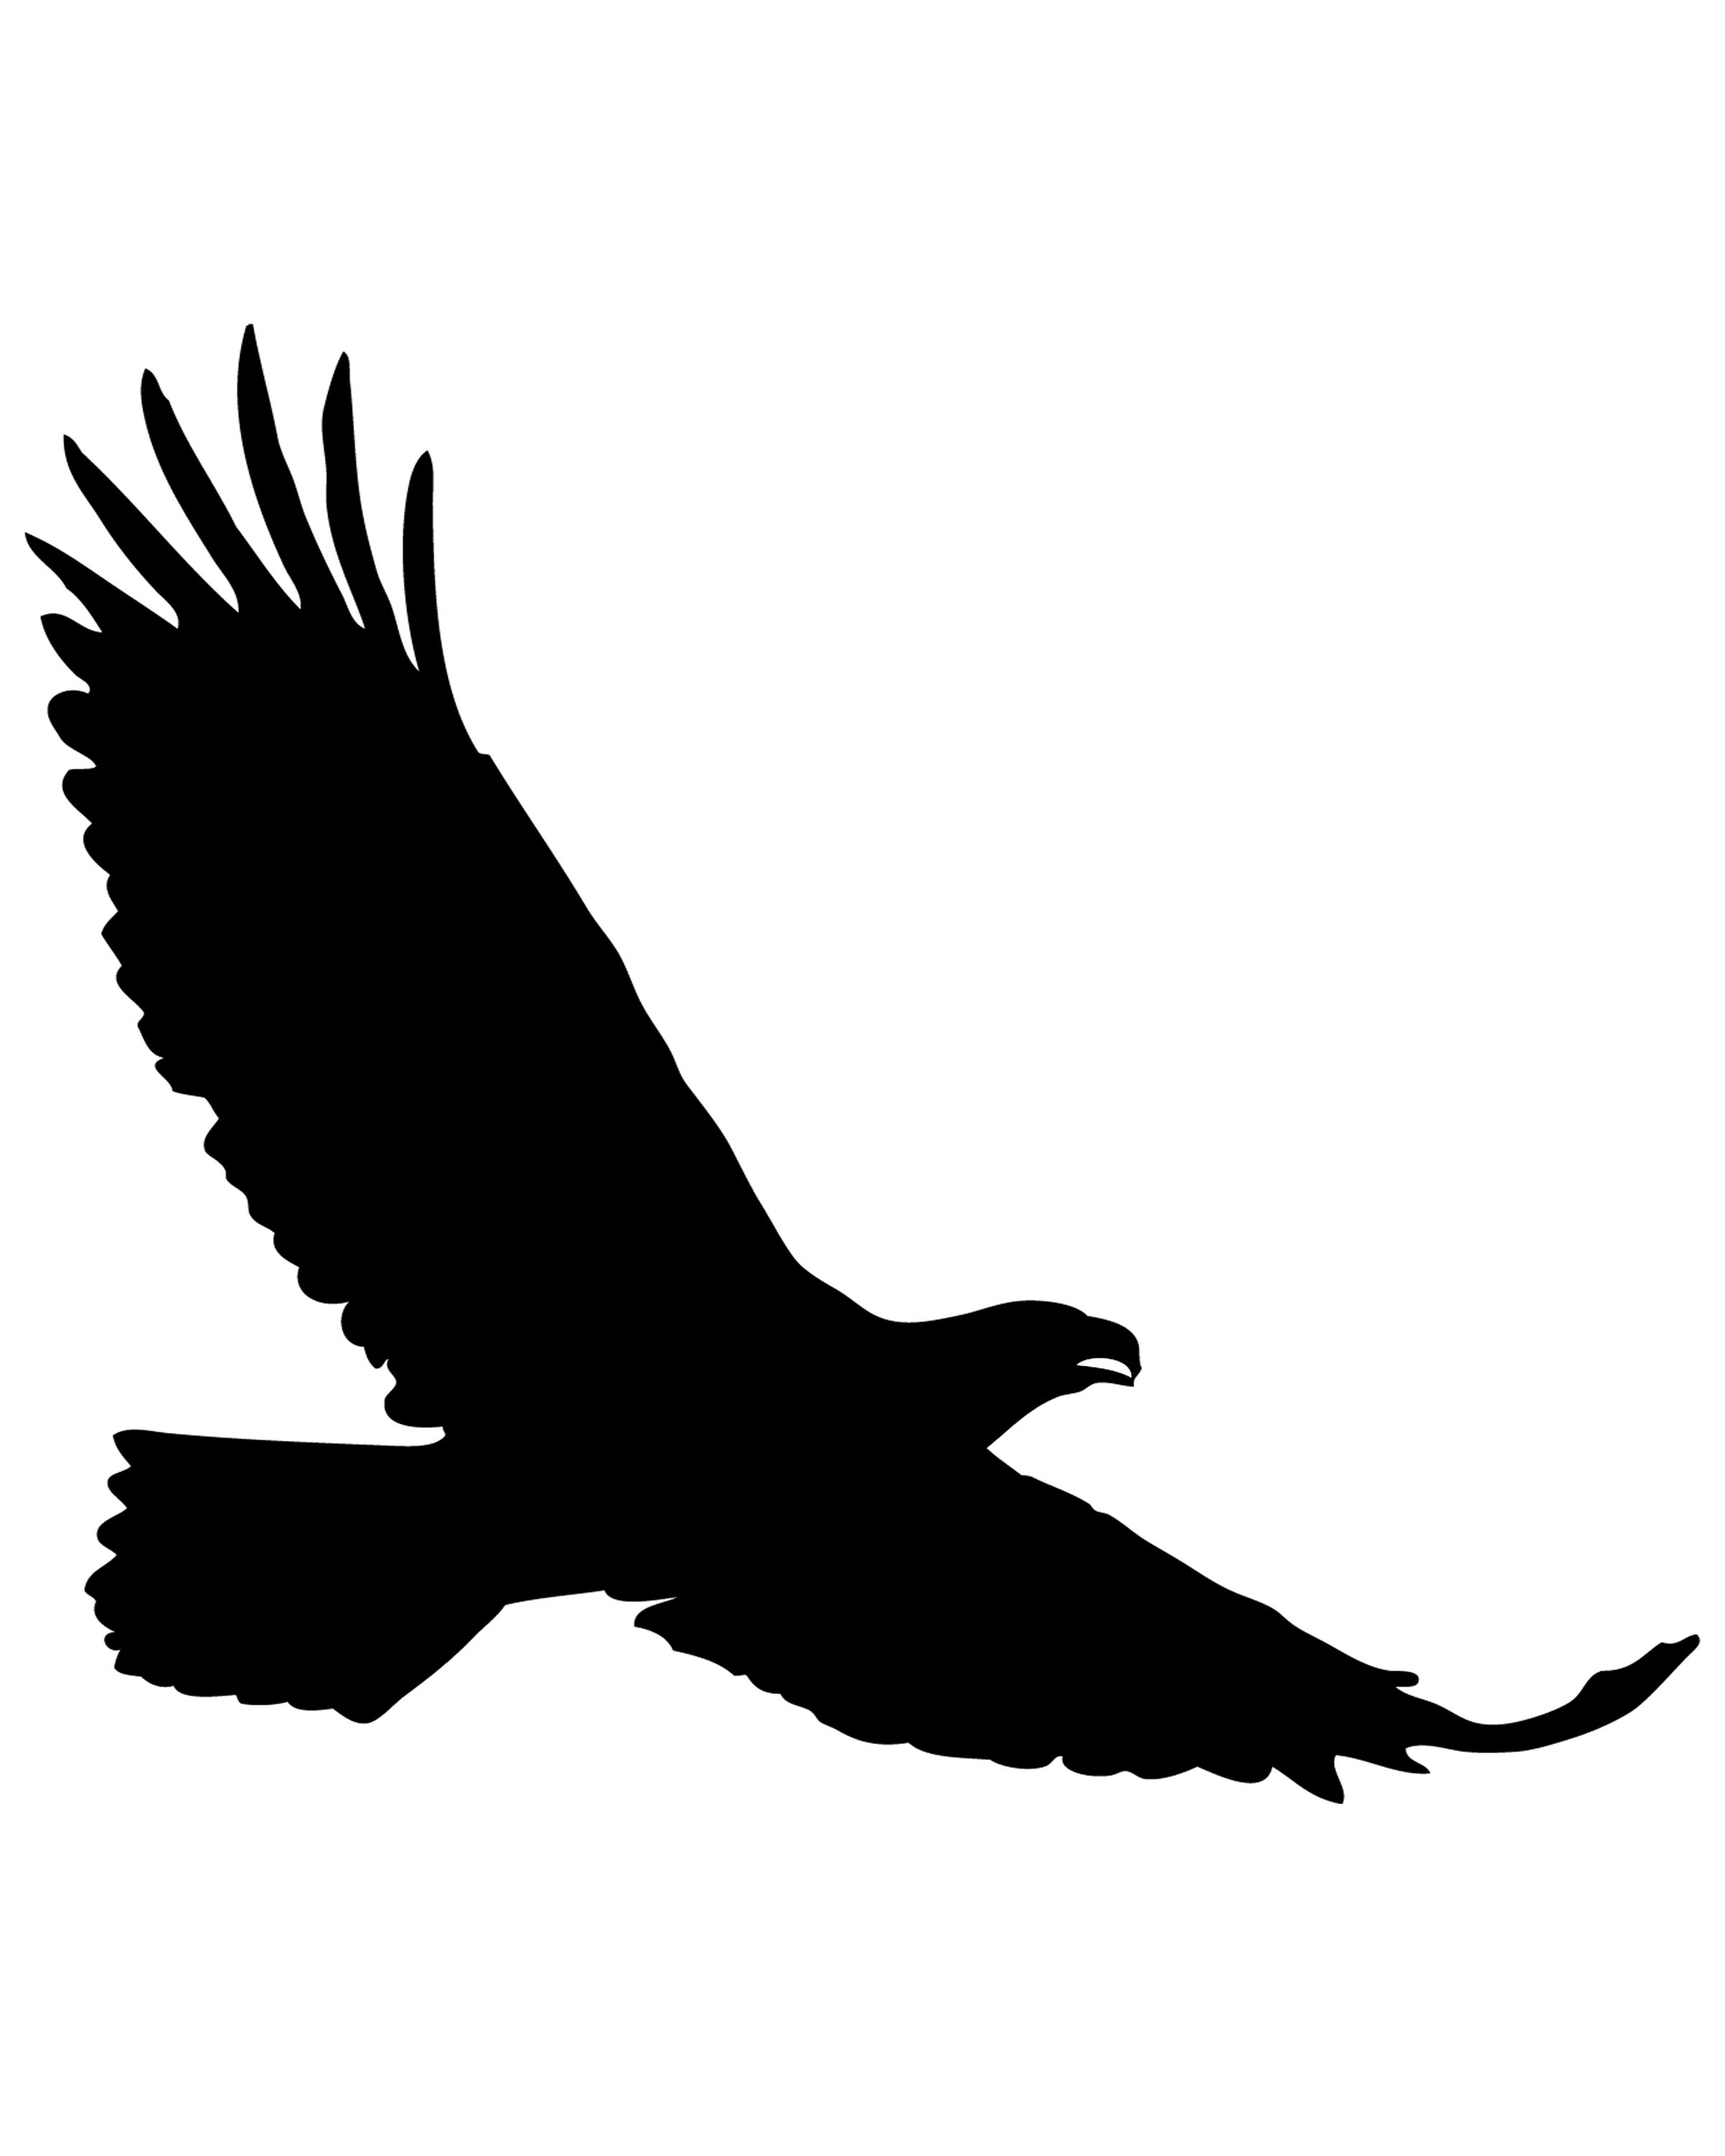 Large eagle for patterns. Free clipart of eagles soaring